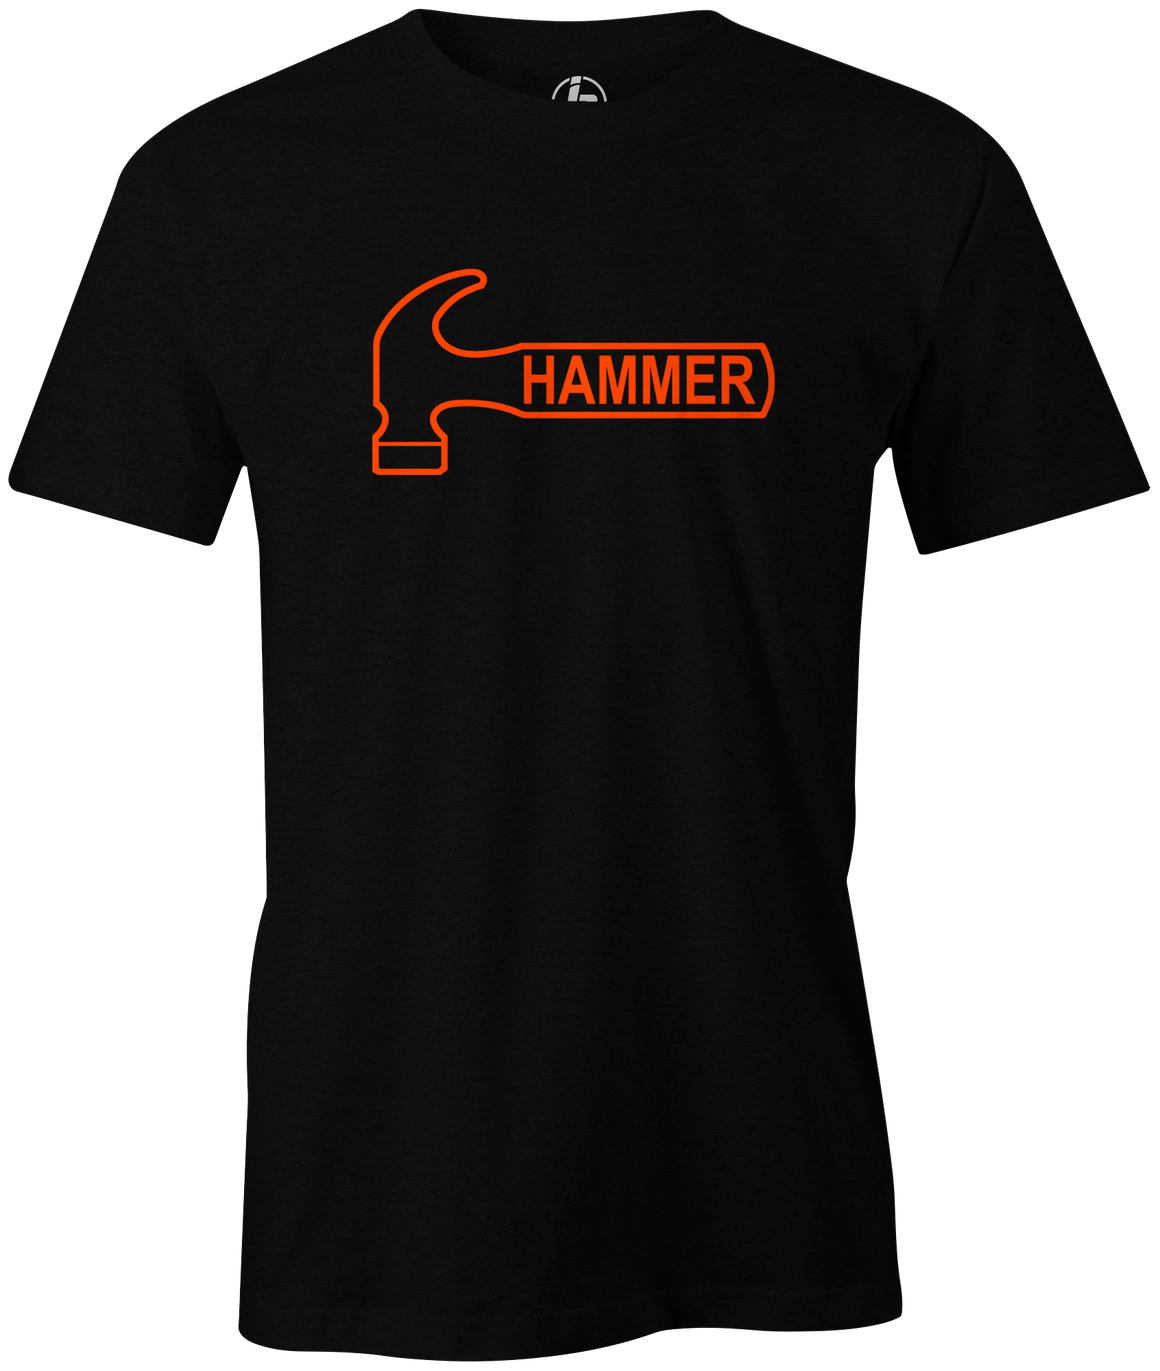 Hammer Logo Men's T-Shirt, Charcoal, Bowling, Tshirt, tee, tee-shirt, tee shirt, classic, bowling ball. black widow. purple hammer.